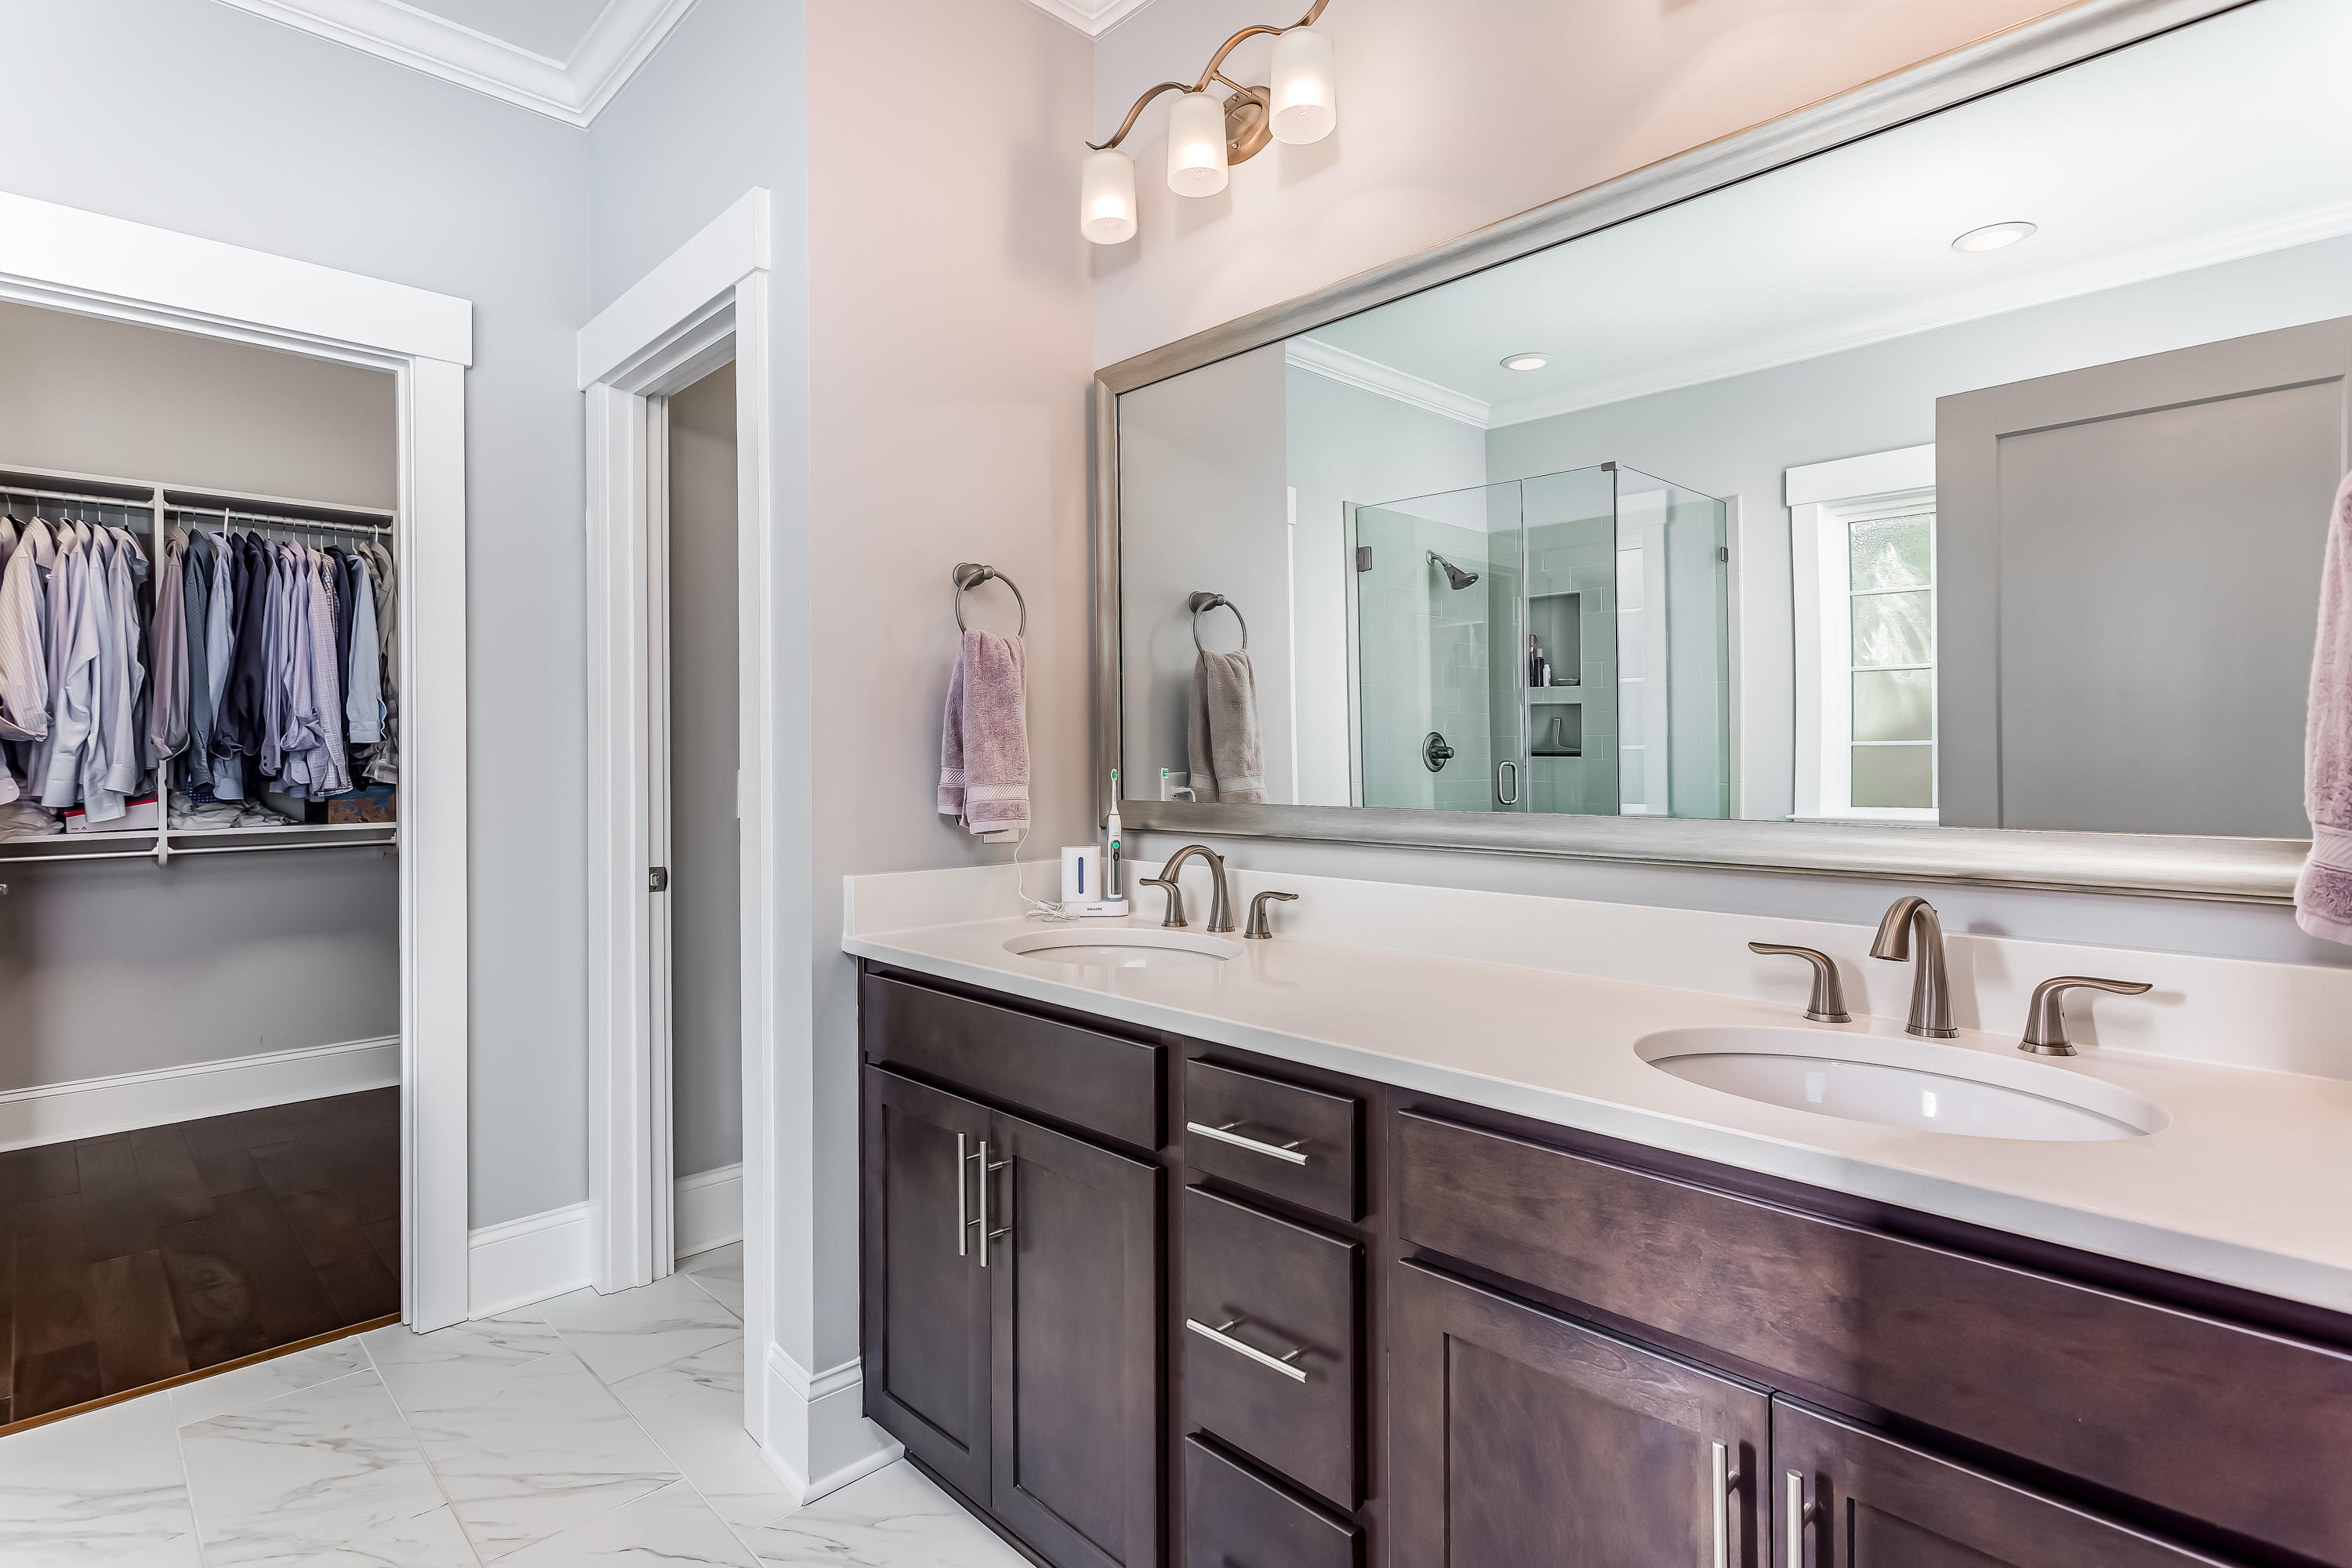 The Village at Stiles Point Homes For Sale - 849 Shutes Folly, Charleston, SC - 1